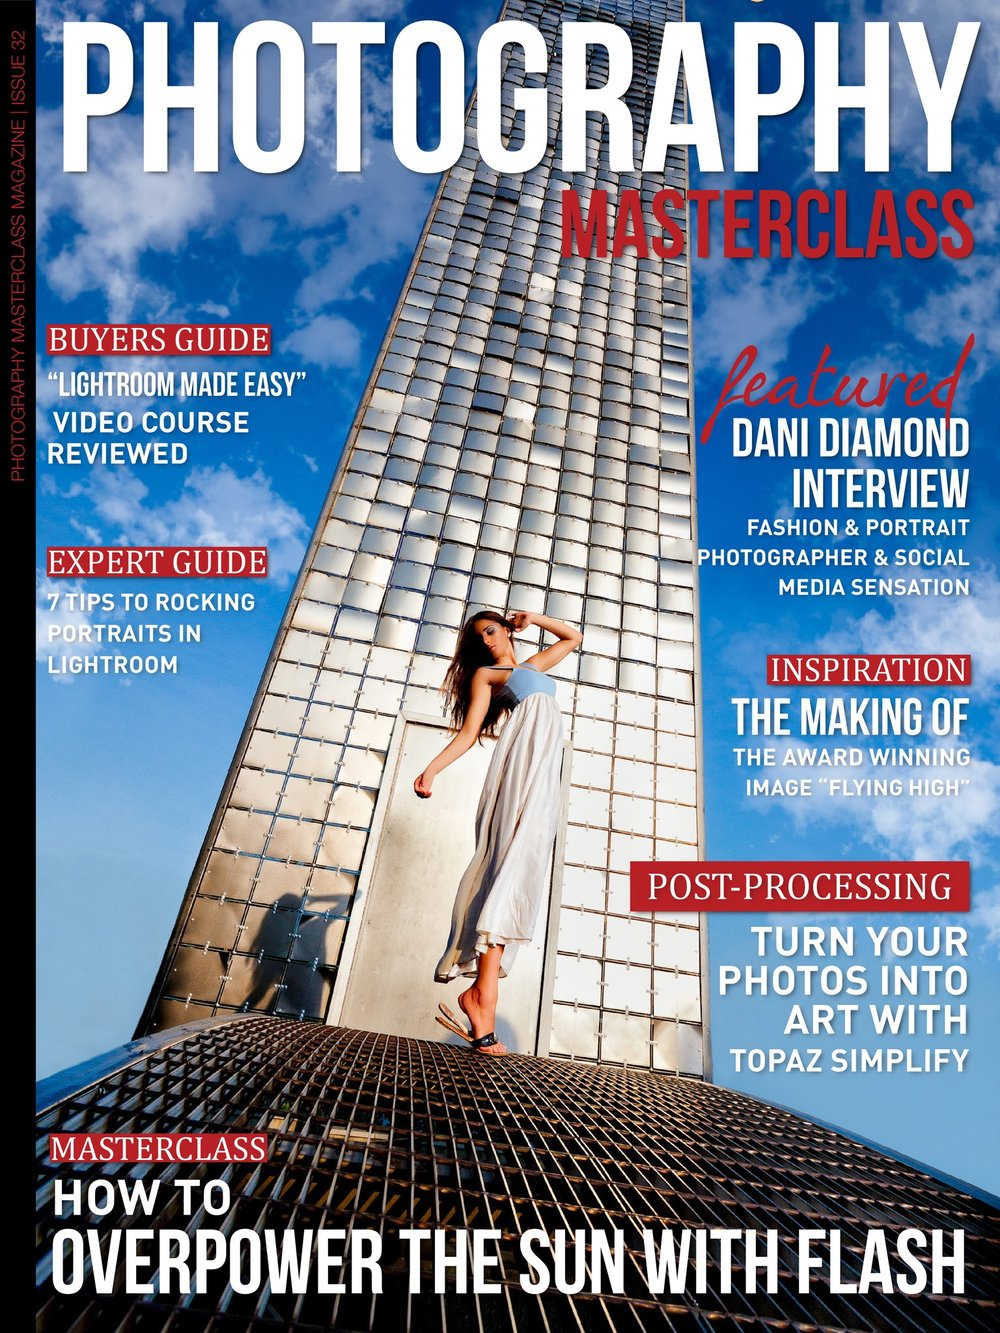 "Michael Zero's Cover image "" THE TOWER"" on Photography Masterclasss Magazine"